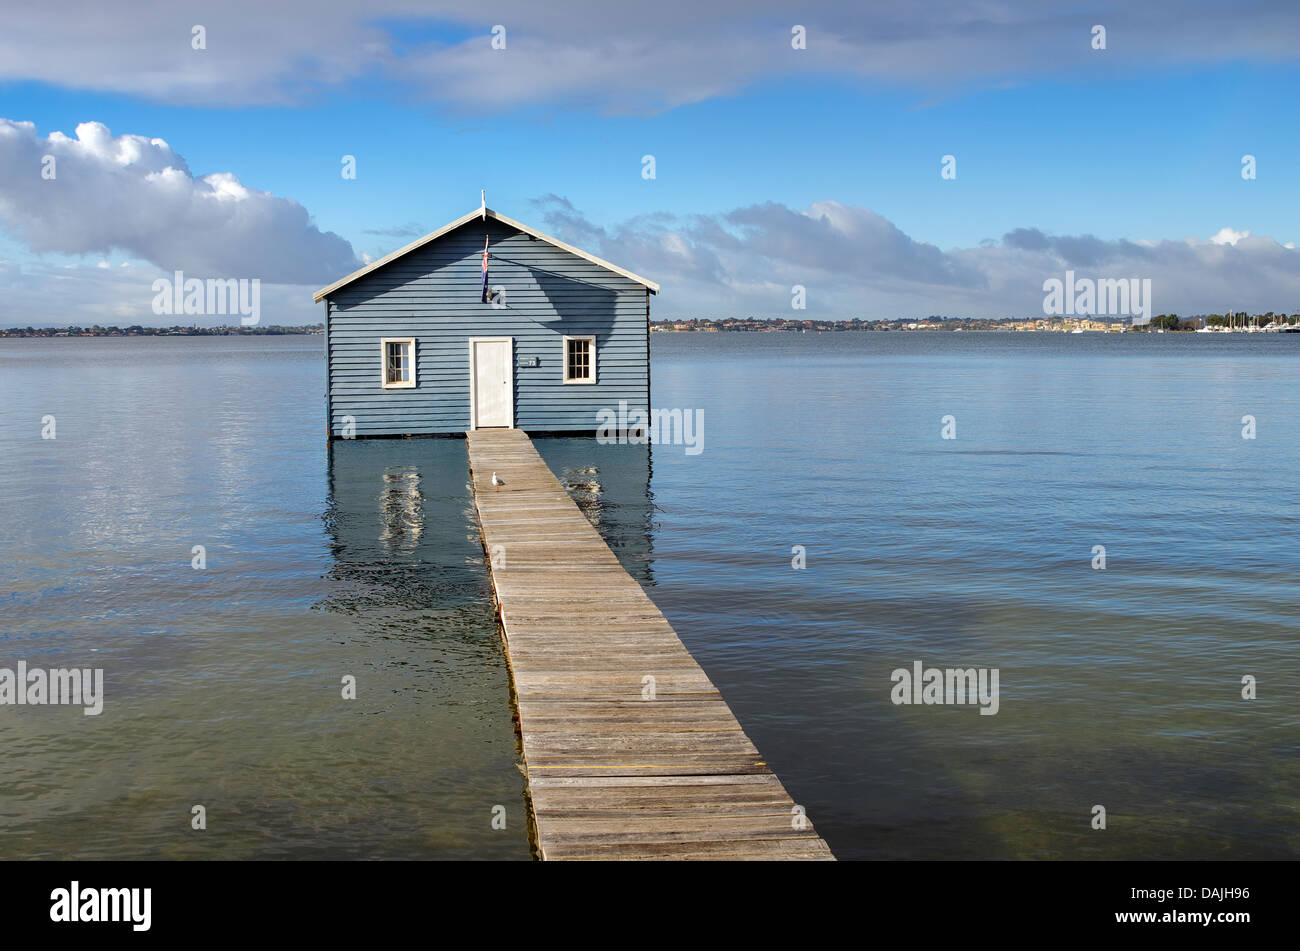 Crawley boat house, Perth Western Australia. - Stock Image